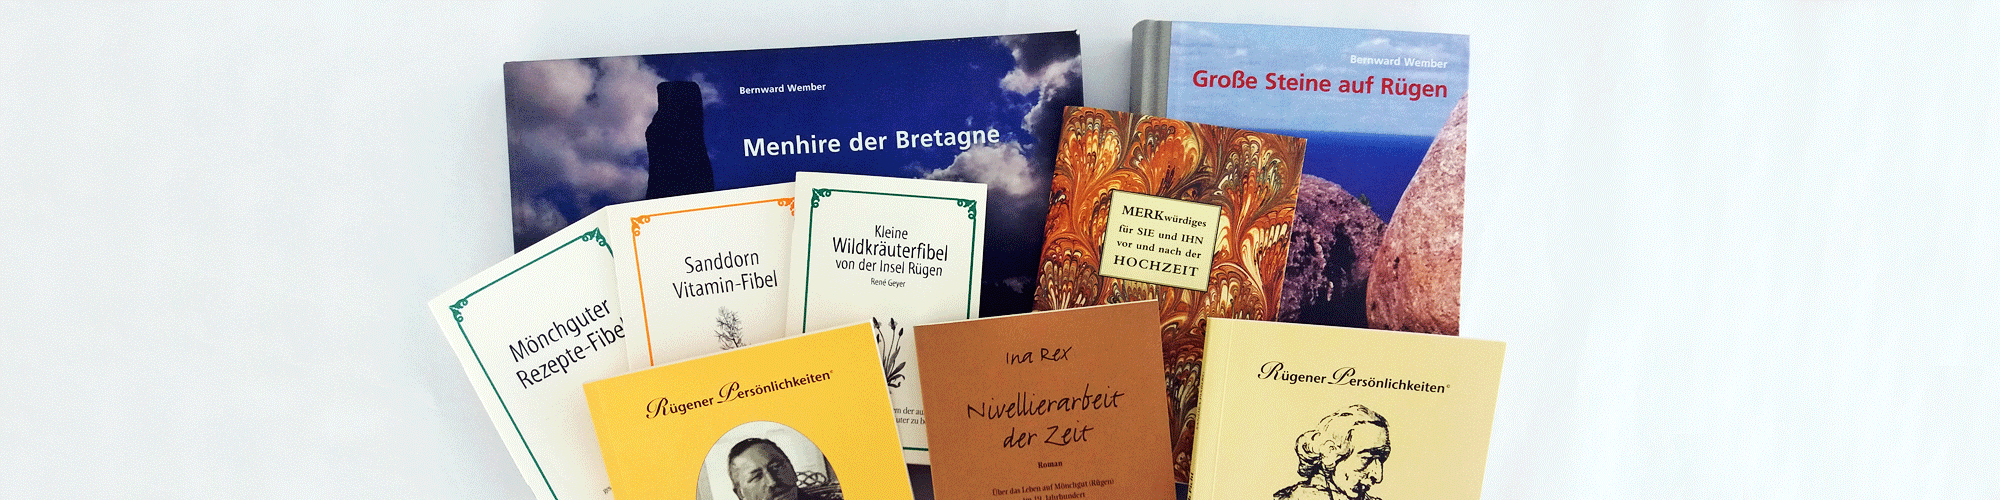 Buchtitel Reprint-Verlag | Papers Friend